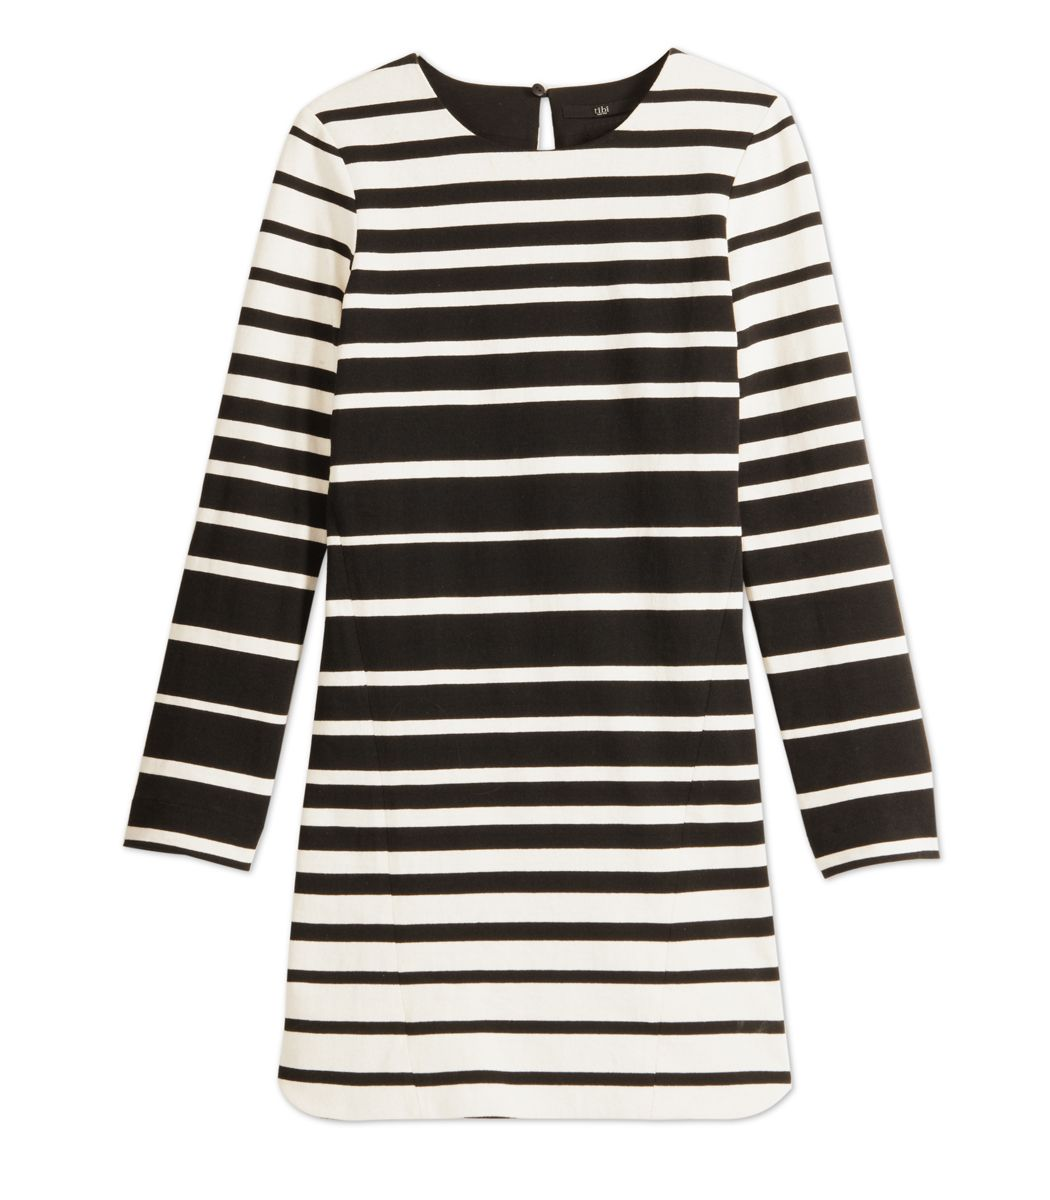 Tibi Variegated Stripe Dress - ShopBAZAAR